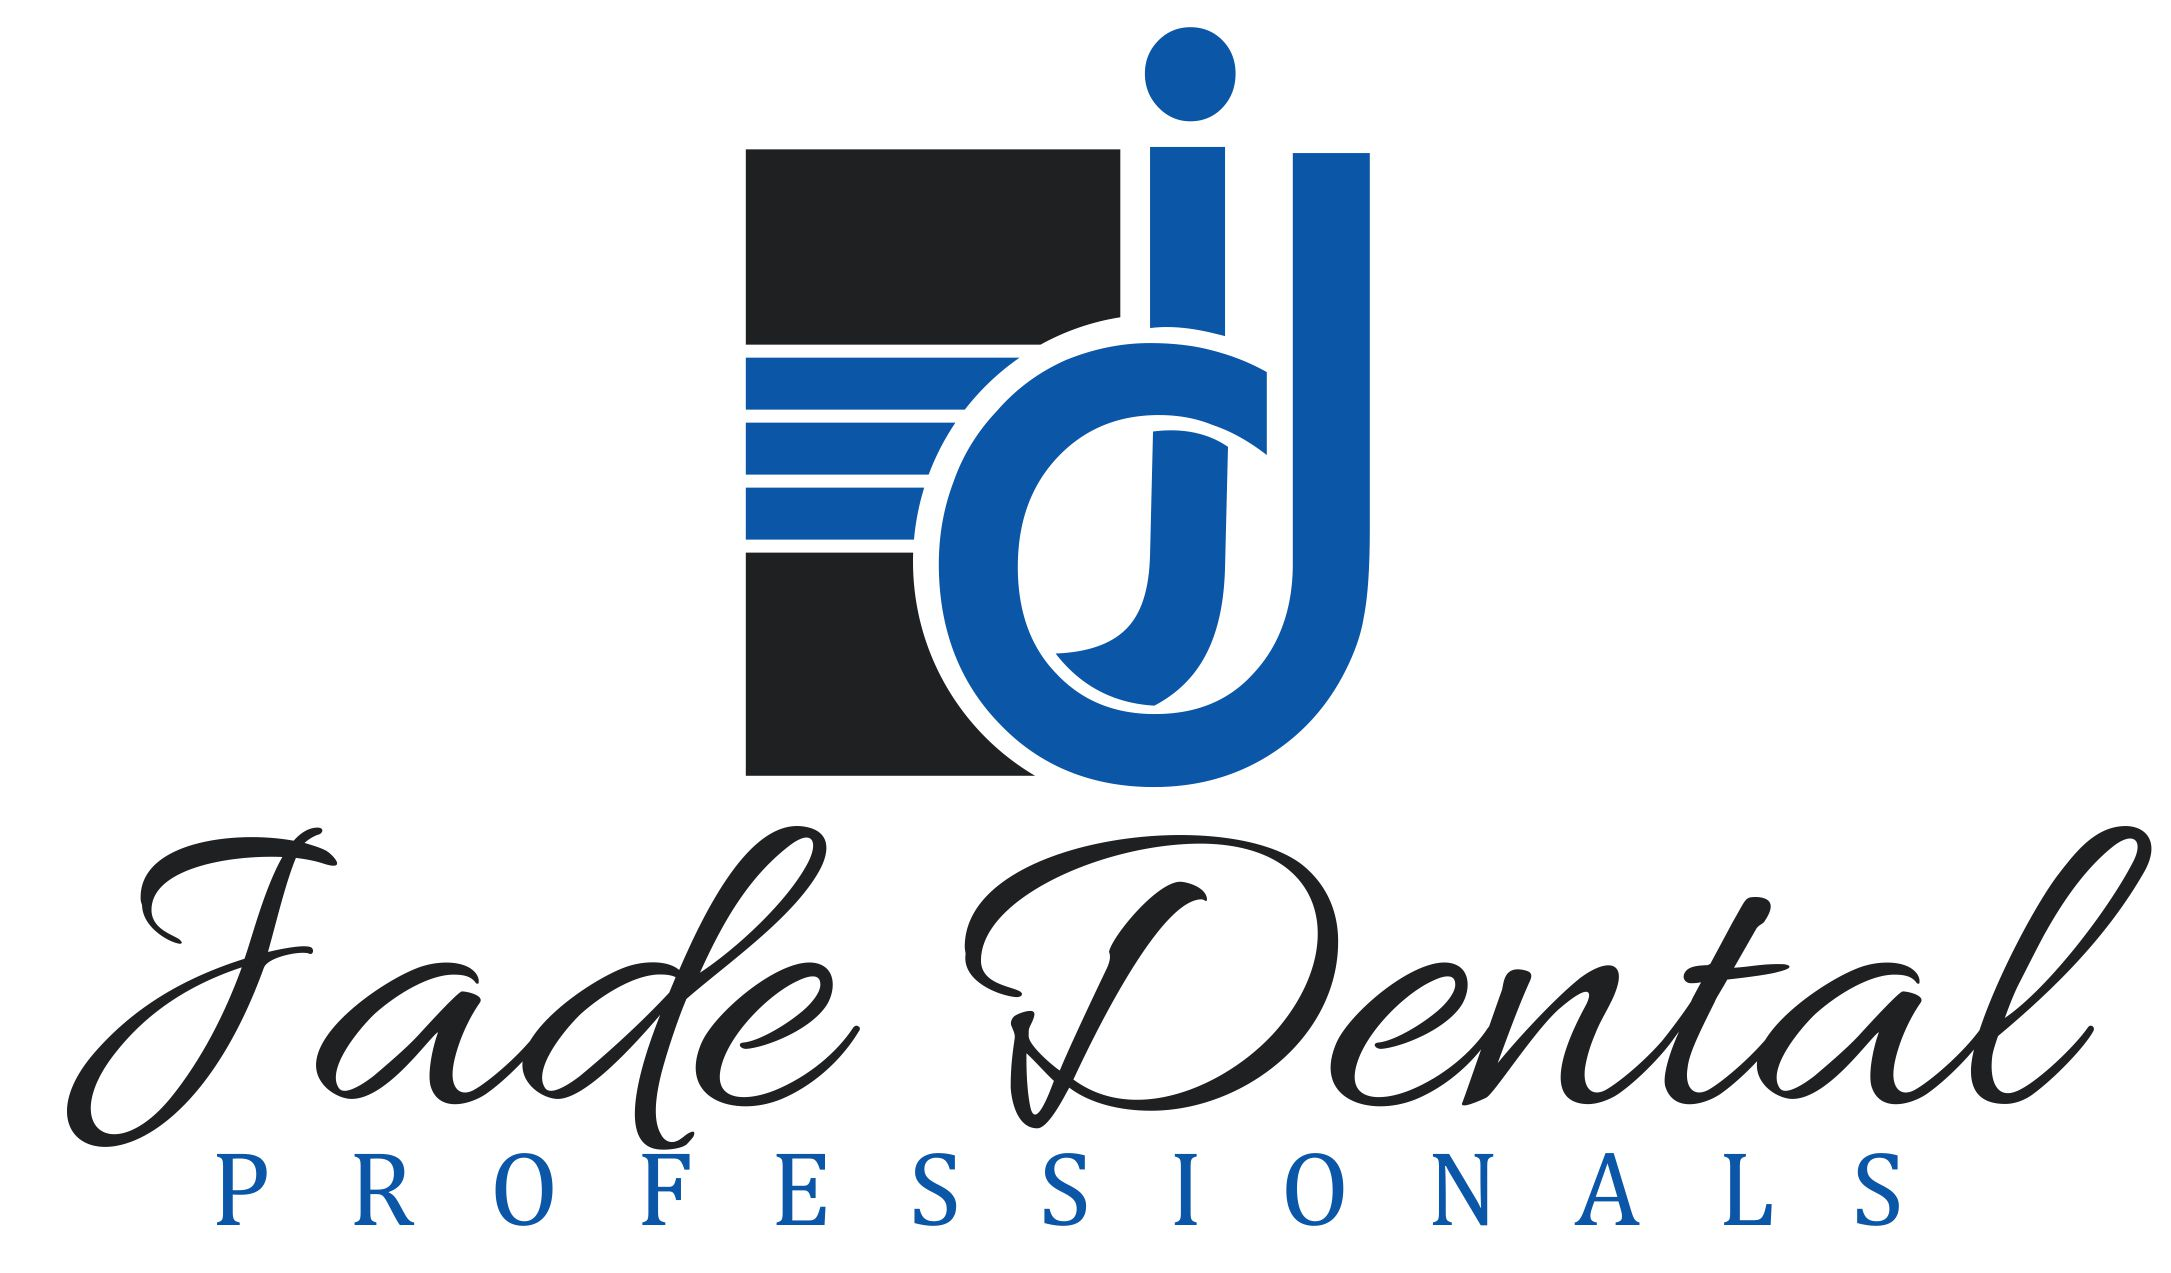 Jade Dental Professionals